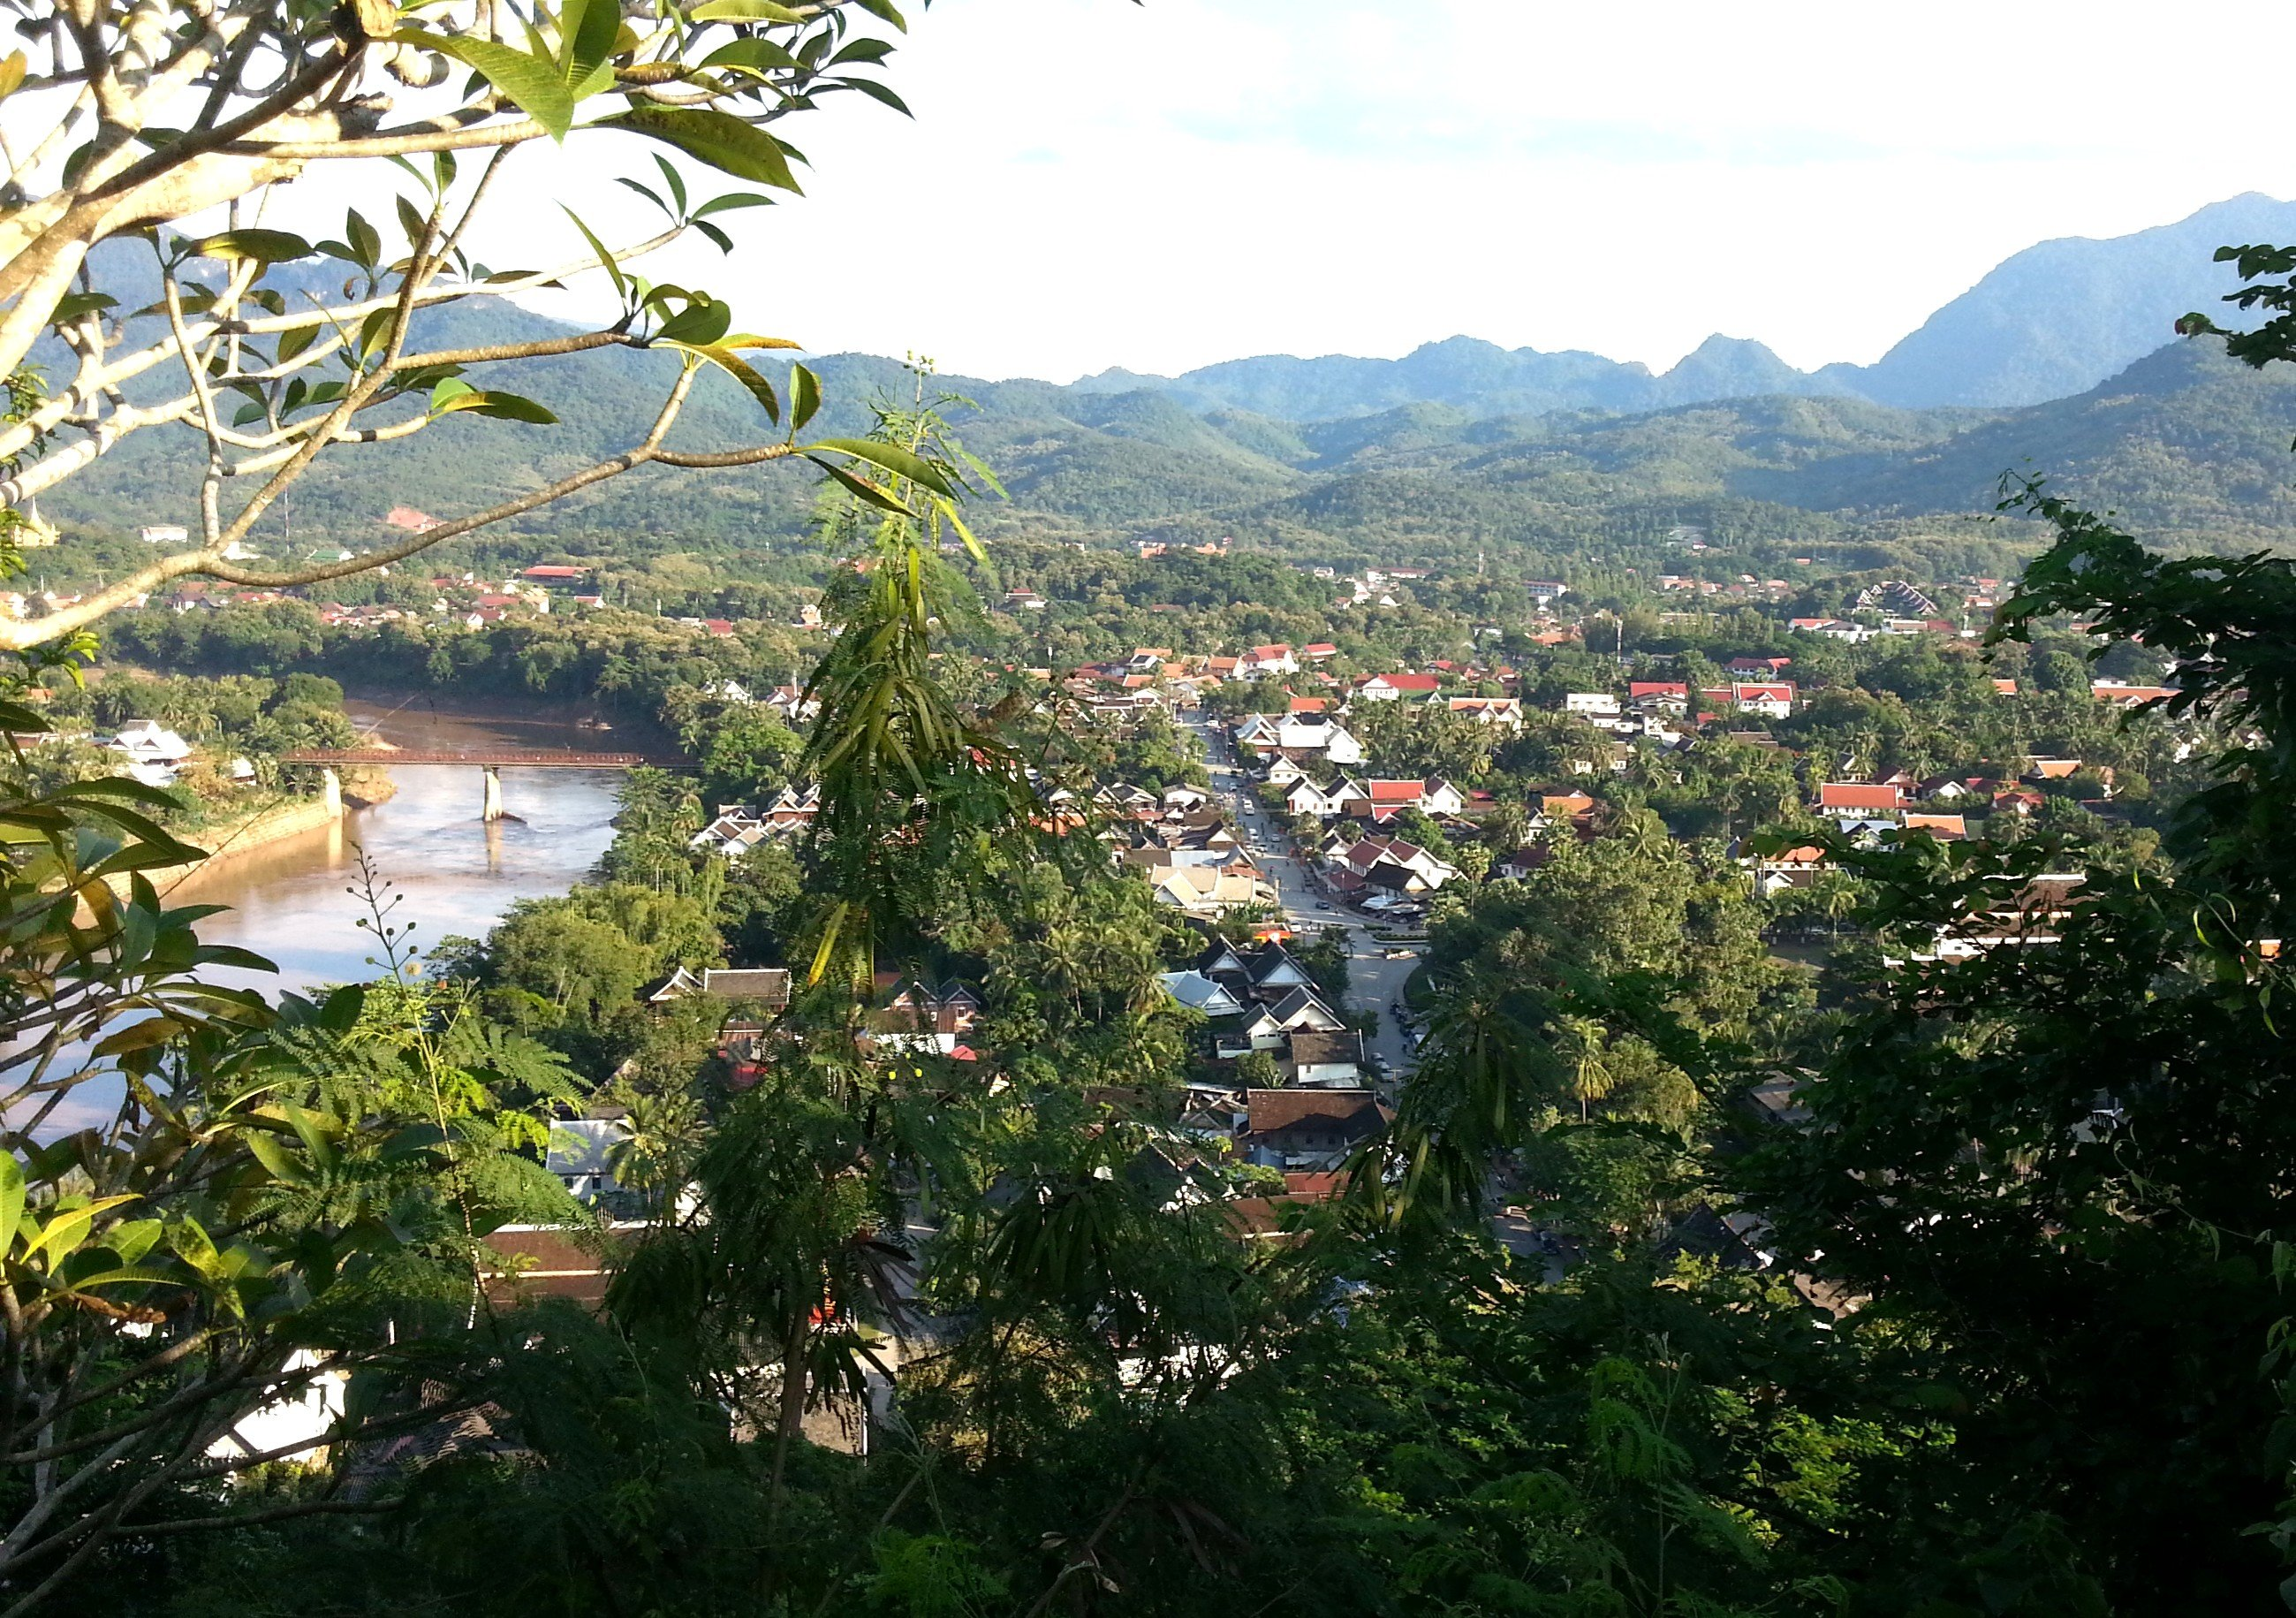 Luang Prabang is located on the banks of the Mekong River